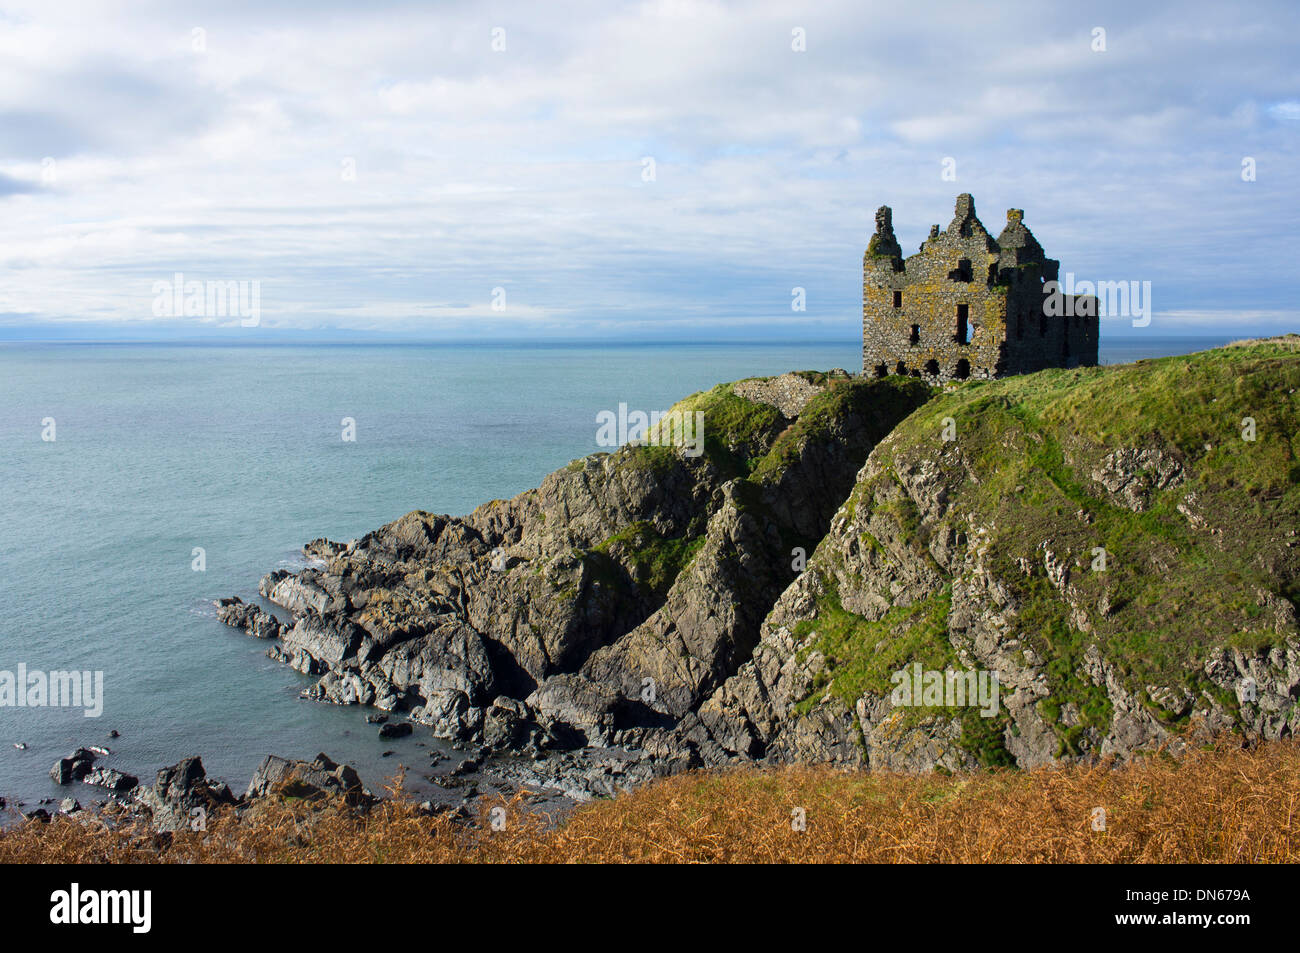 Ruined Castle looking out to sea on the cliffs on the west coast of Scotland. - Stock Image